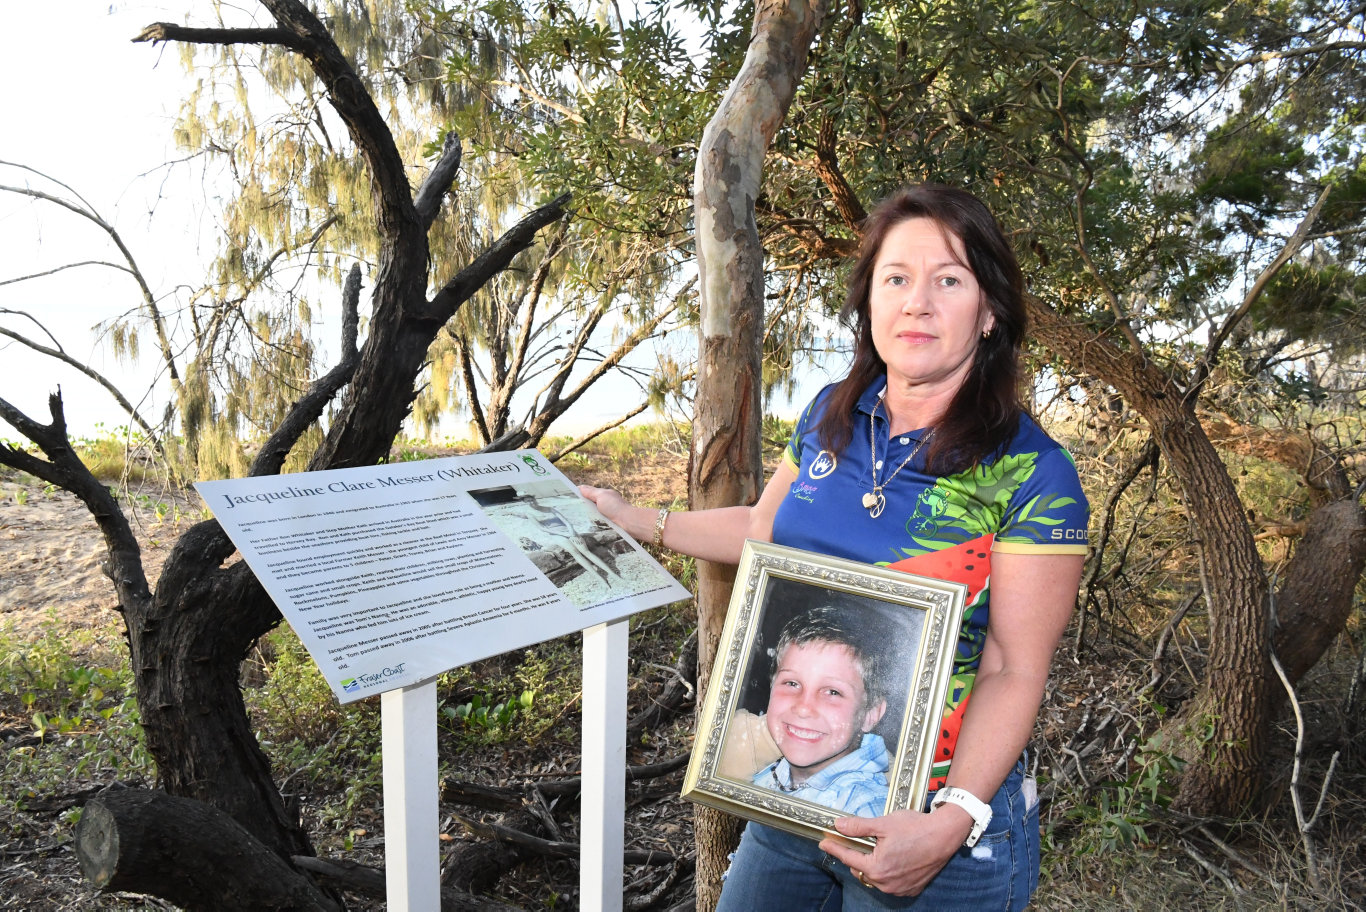 CRUEL VANDALISM: Tracey Messer at the site of Tom's Walk which was graffitied earlier this week. The vandalism has since been cleaned up but Ms Messer said it was still upsetting to hear about it.